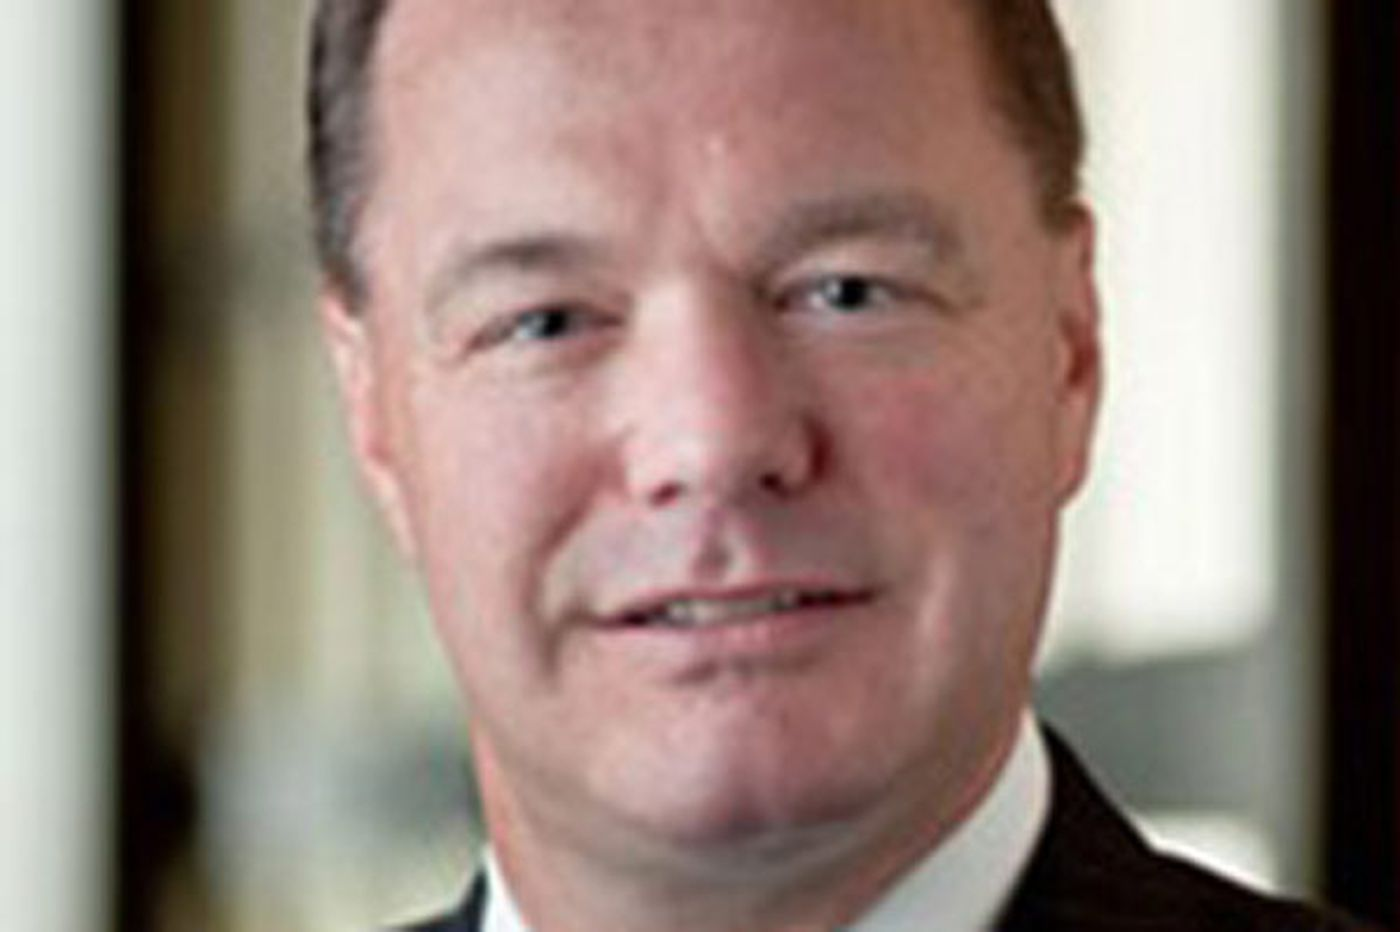 Carl M. Buchholz, lawyer and civic leader, dies at 51